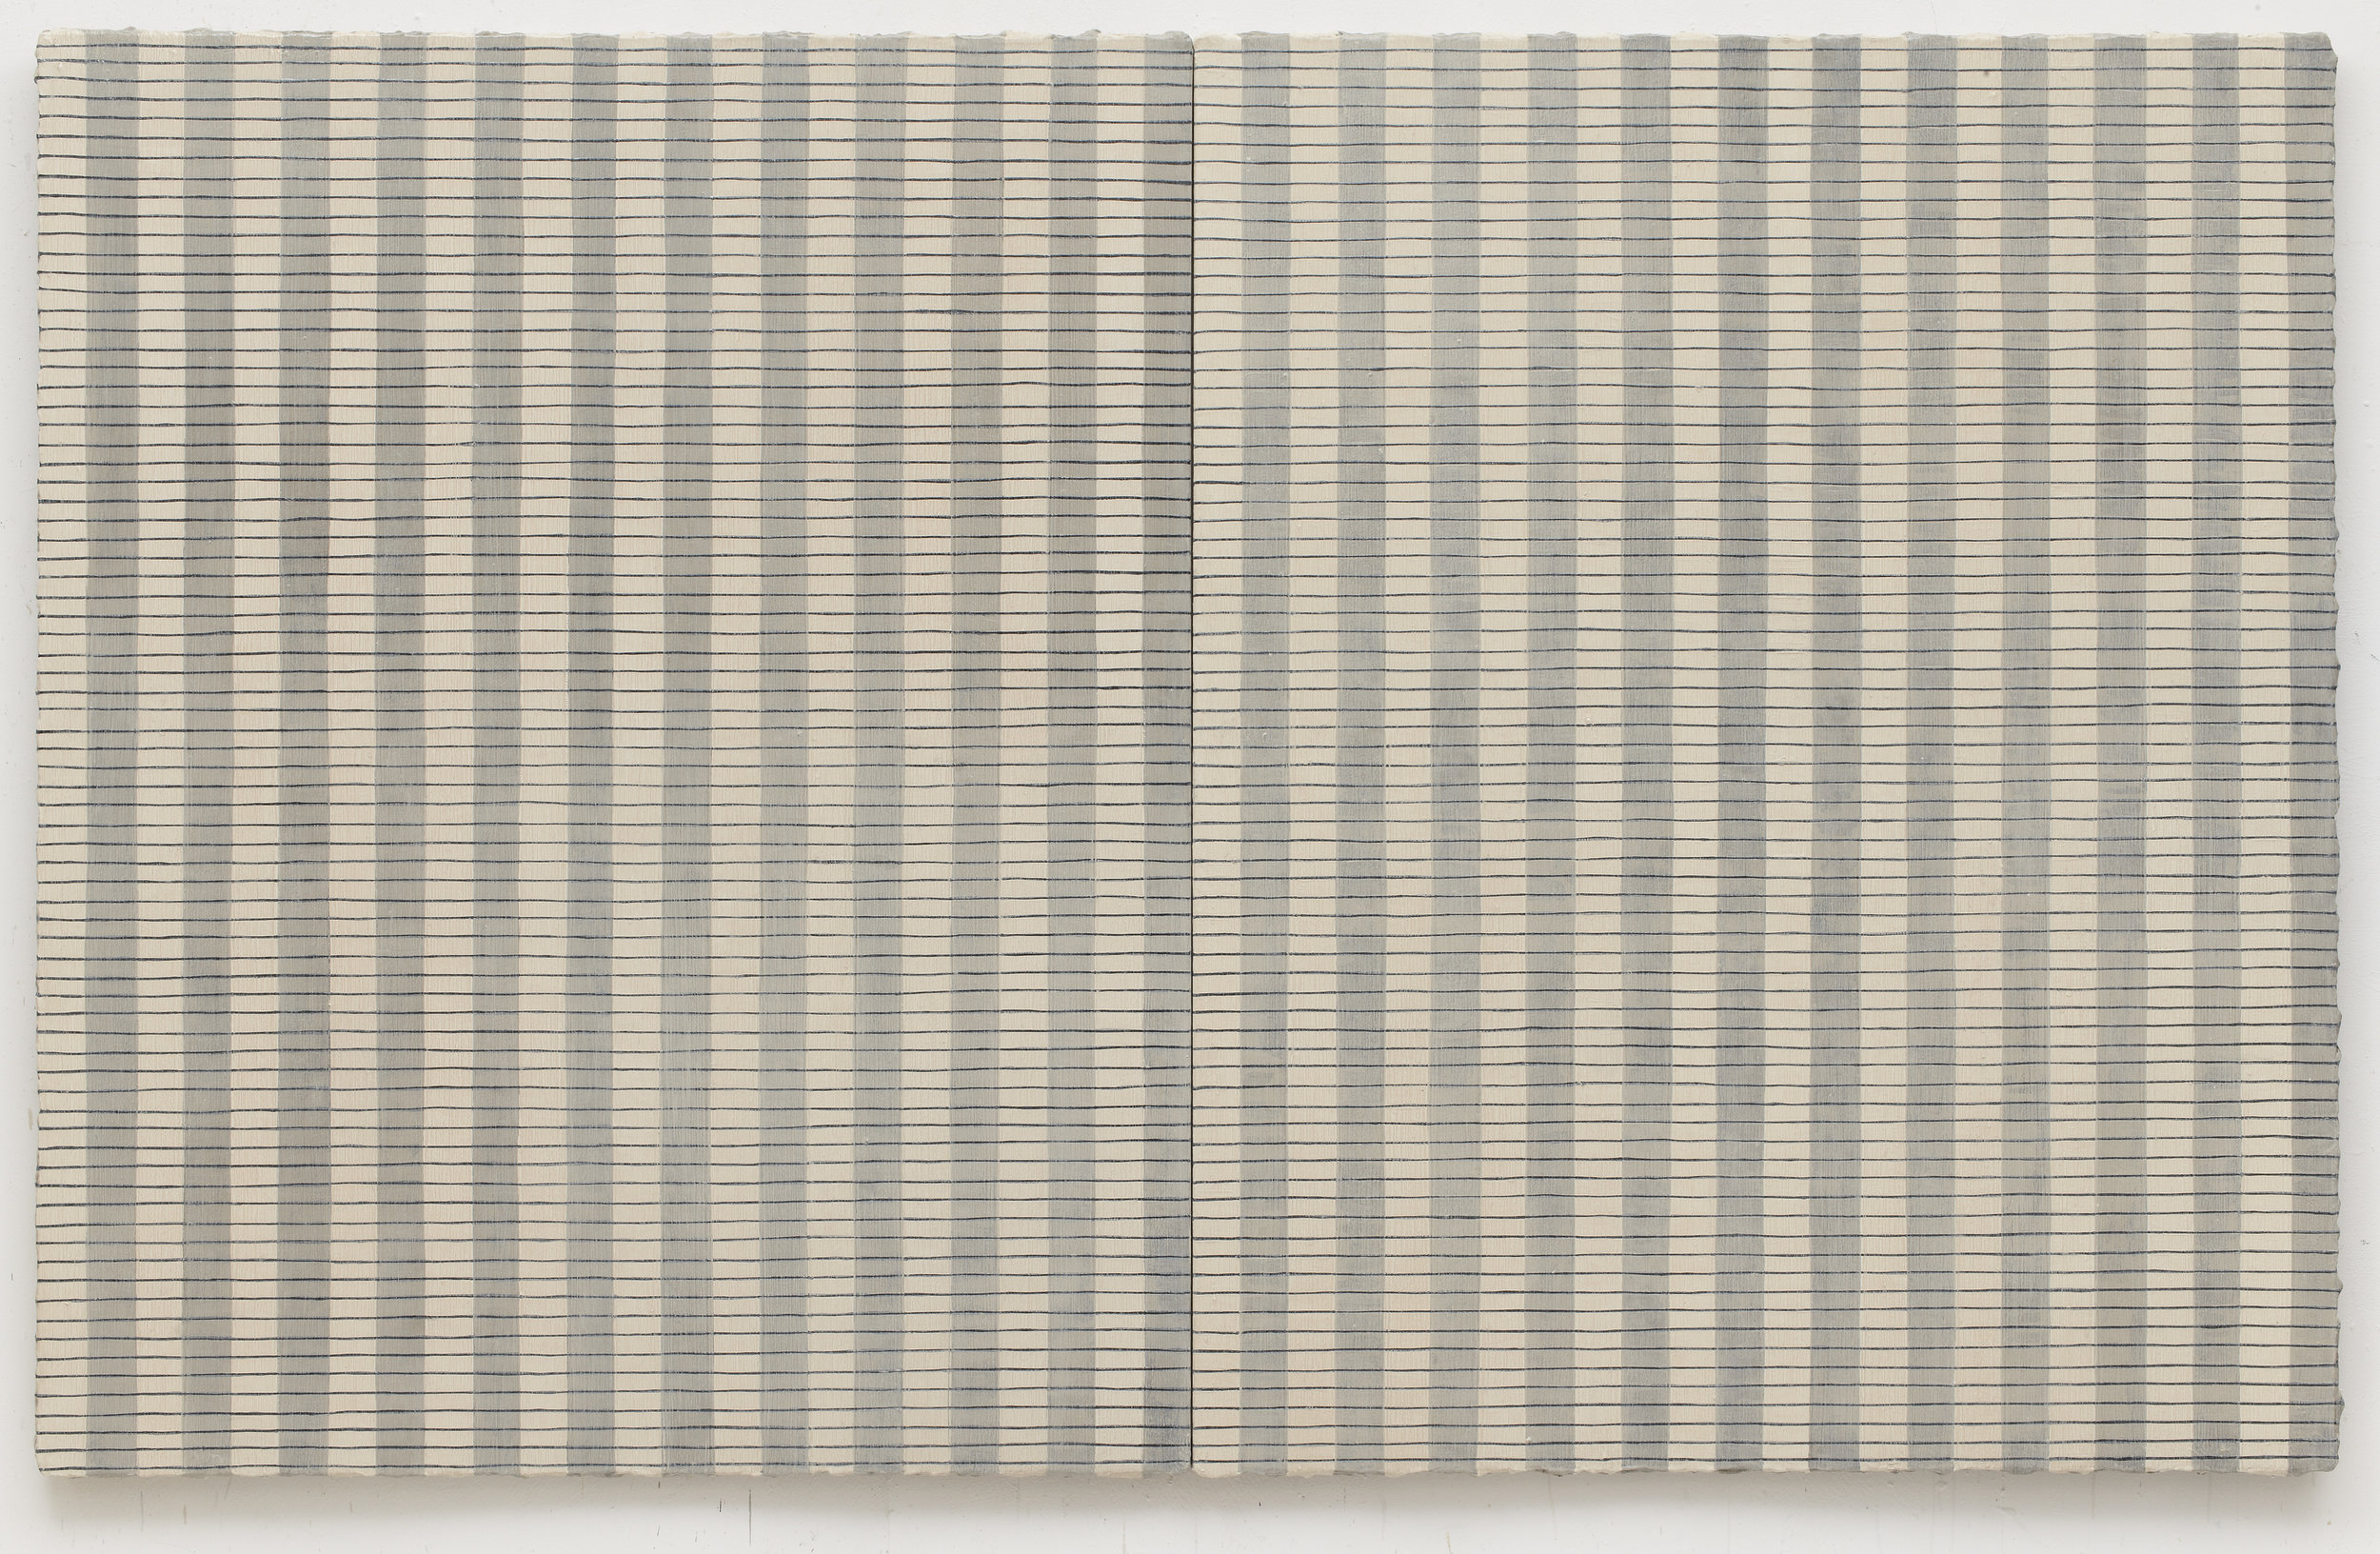 Brooks-Ribbons-2011-Oil-enamel-pigment-and-PVA-on-canvas- 153x244cm.jpg